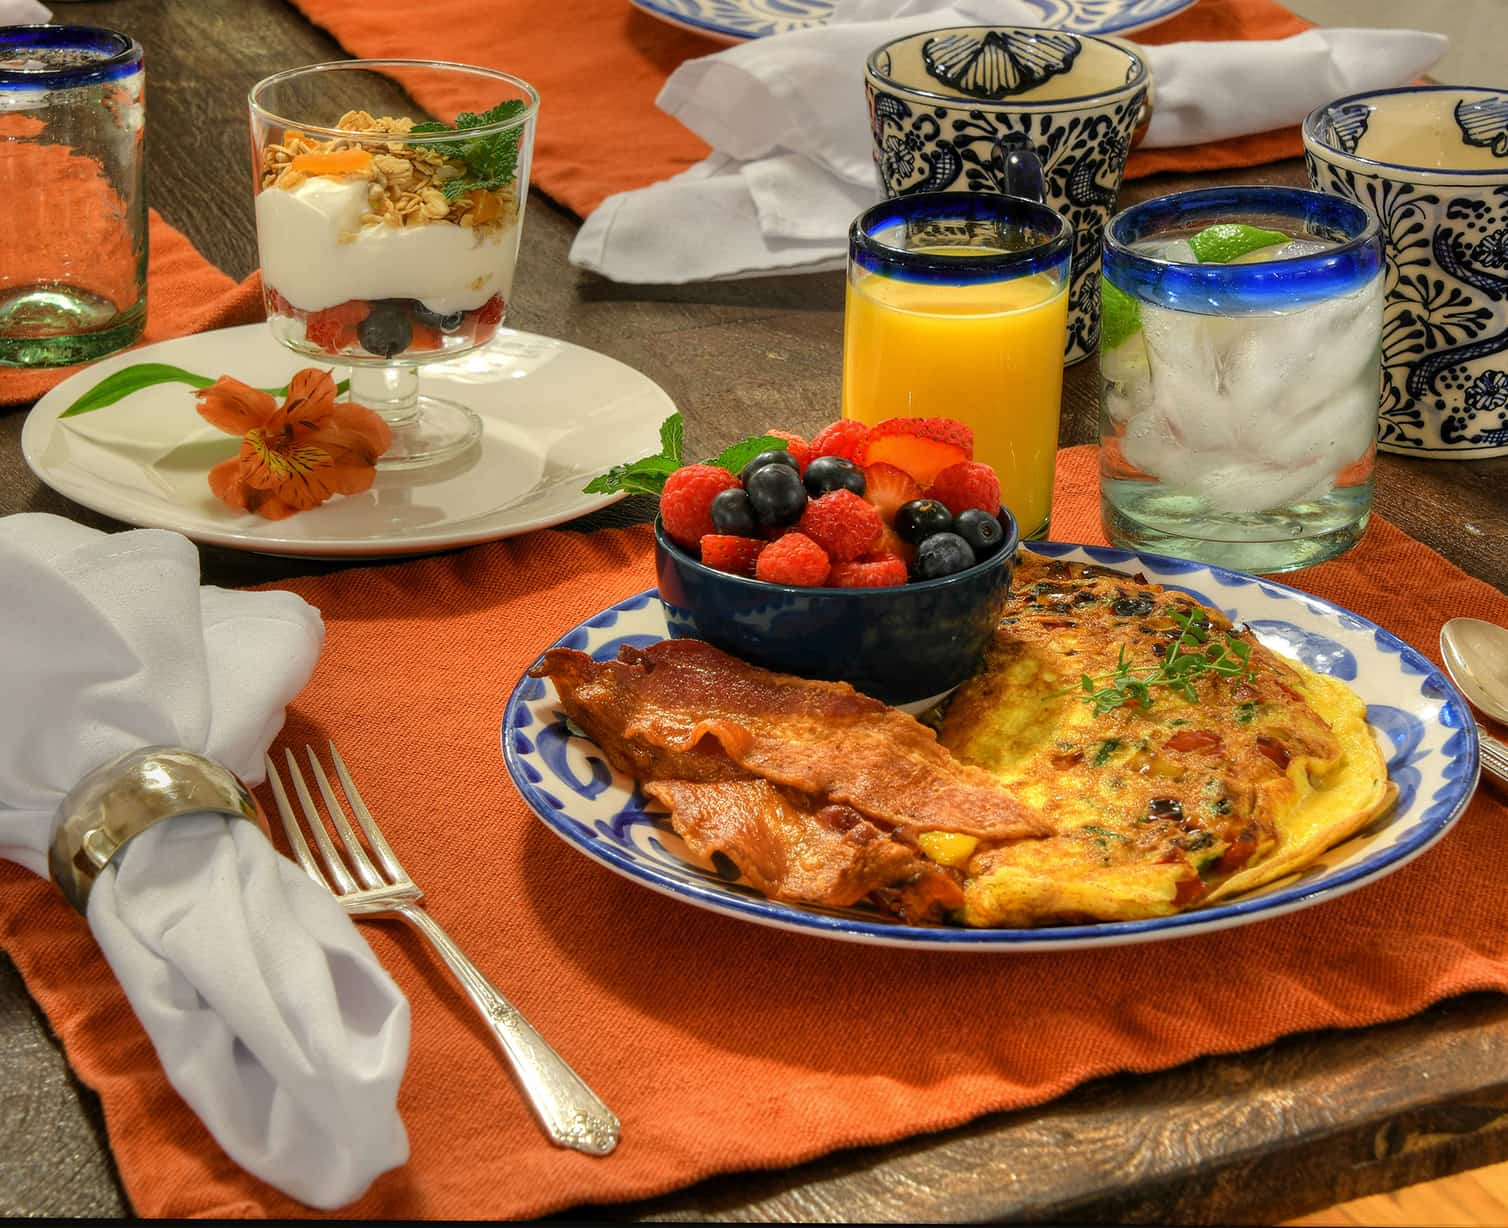 Locally sourced and regionally inspired breakfasts